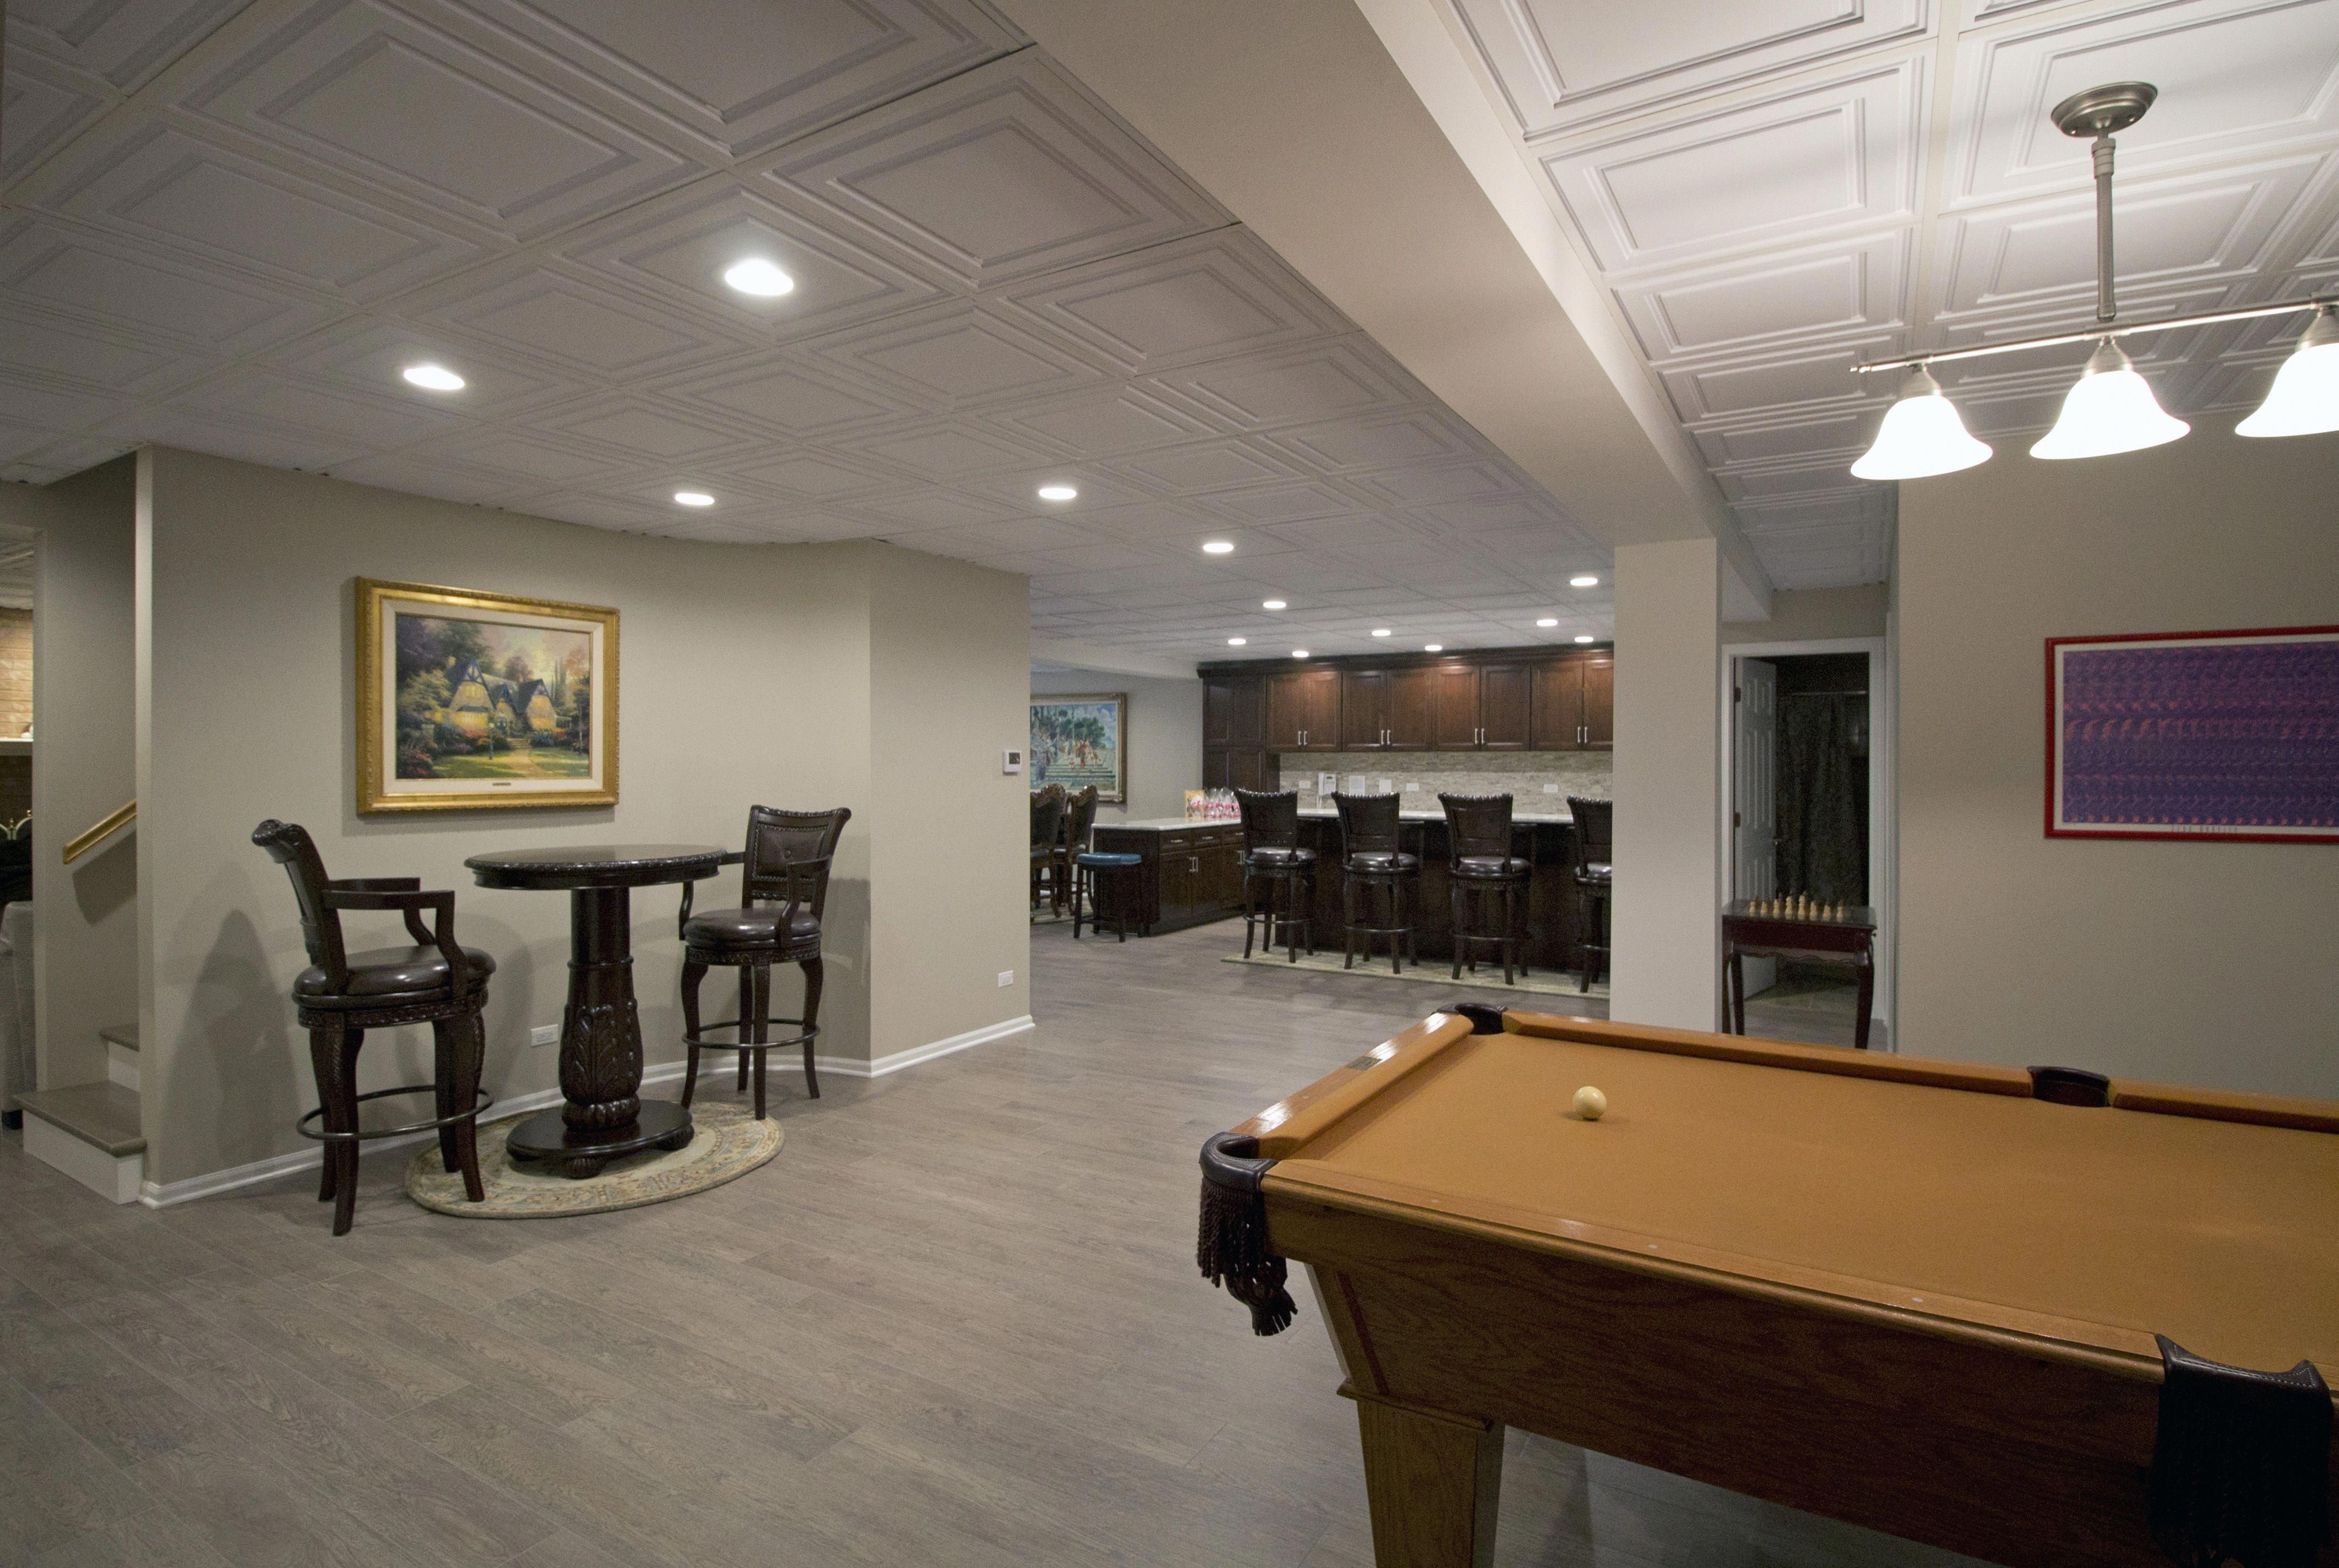 Give your basement walls a rustic look without breaking